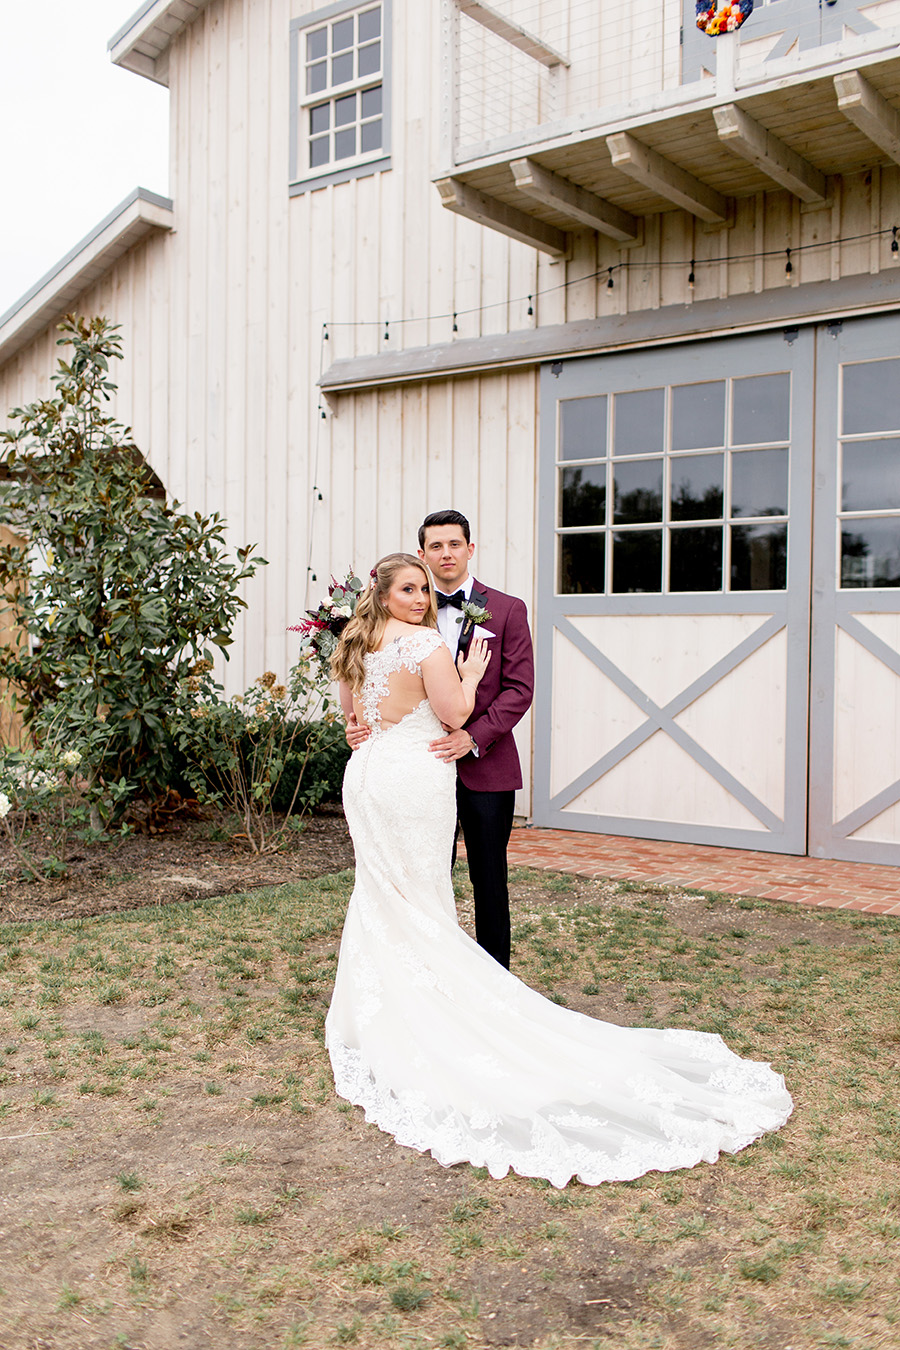 groom in a maroon tux and black bow tie